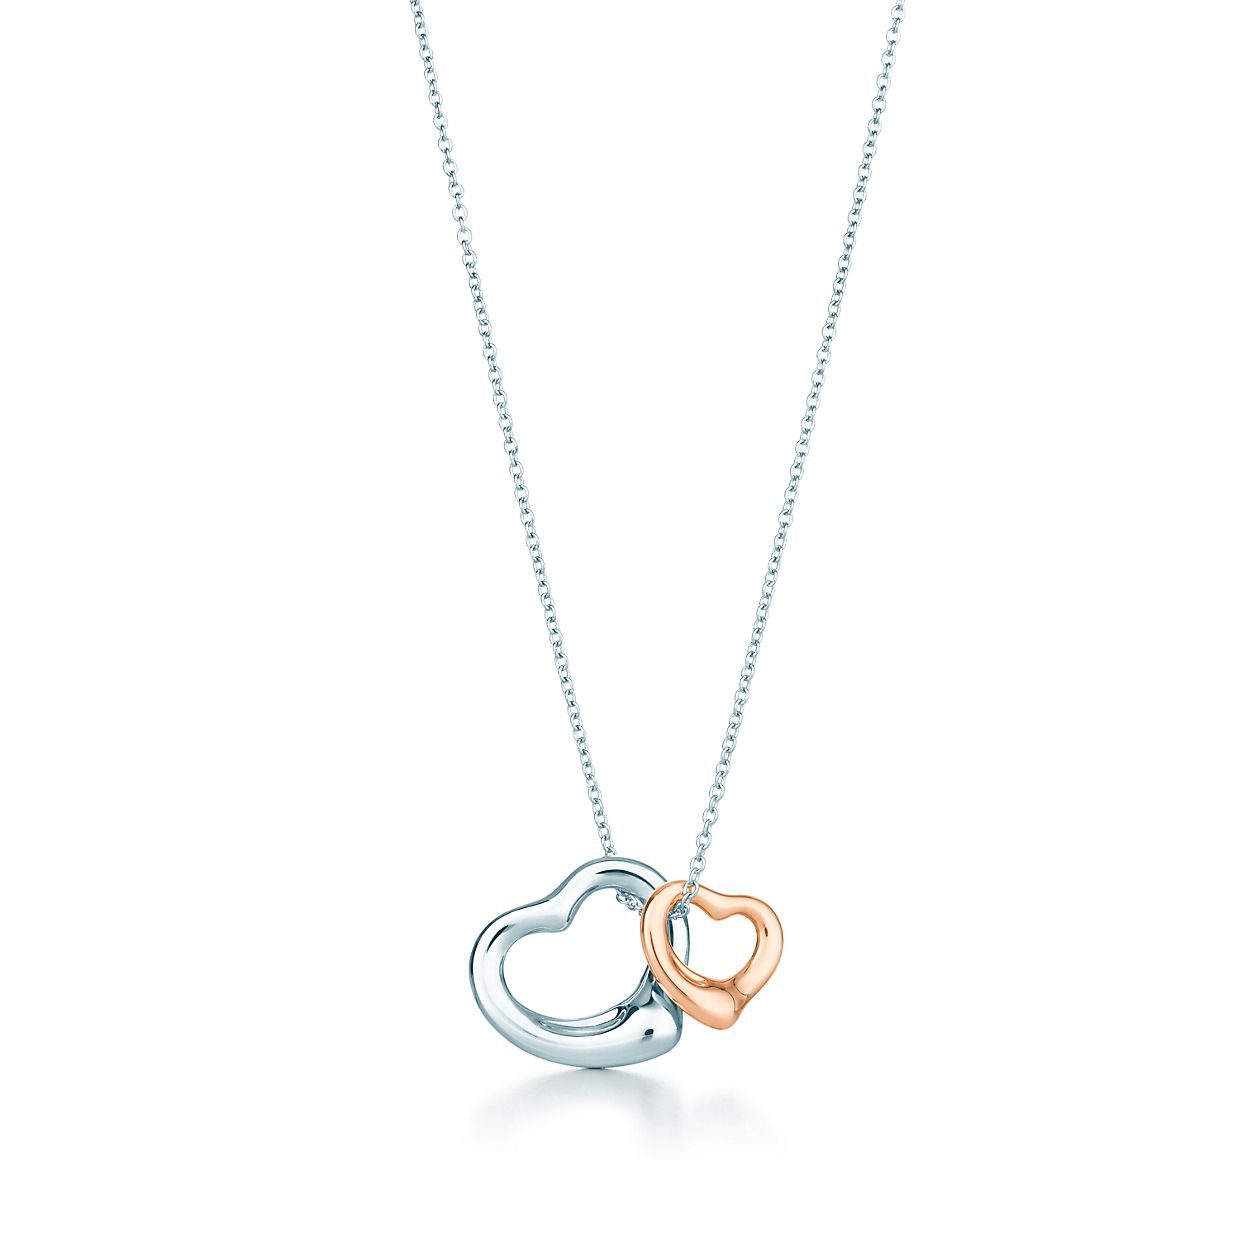 Elsa Peretti Open Heart pendant in sterling silver with diamonds Tiffany & Co. dSFzpzAUT